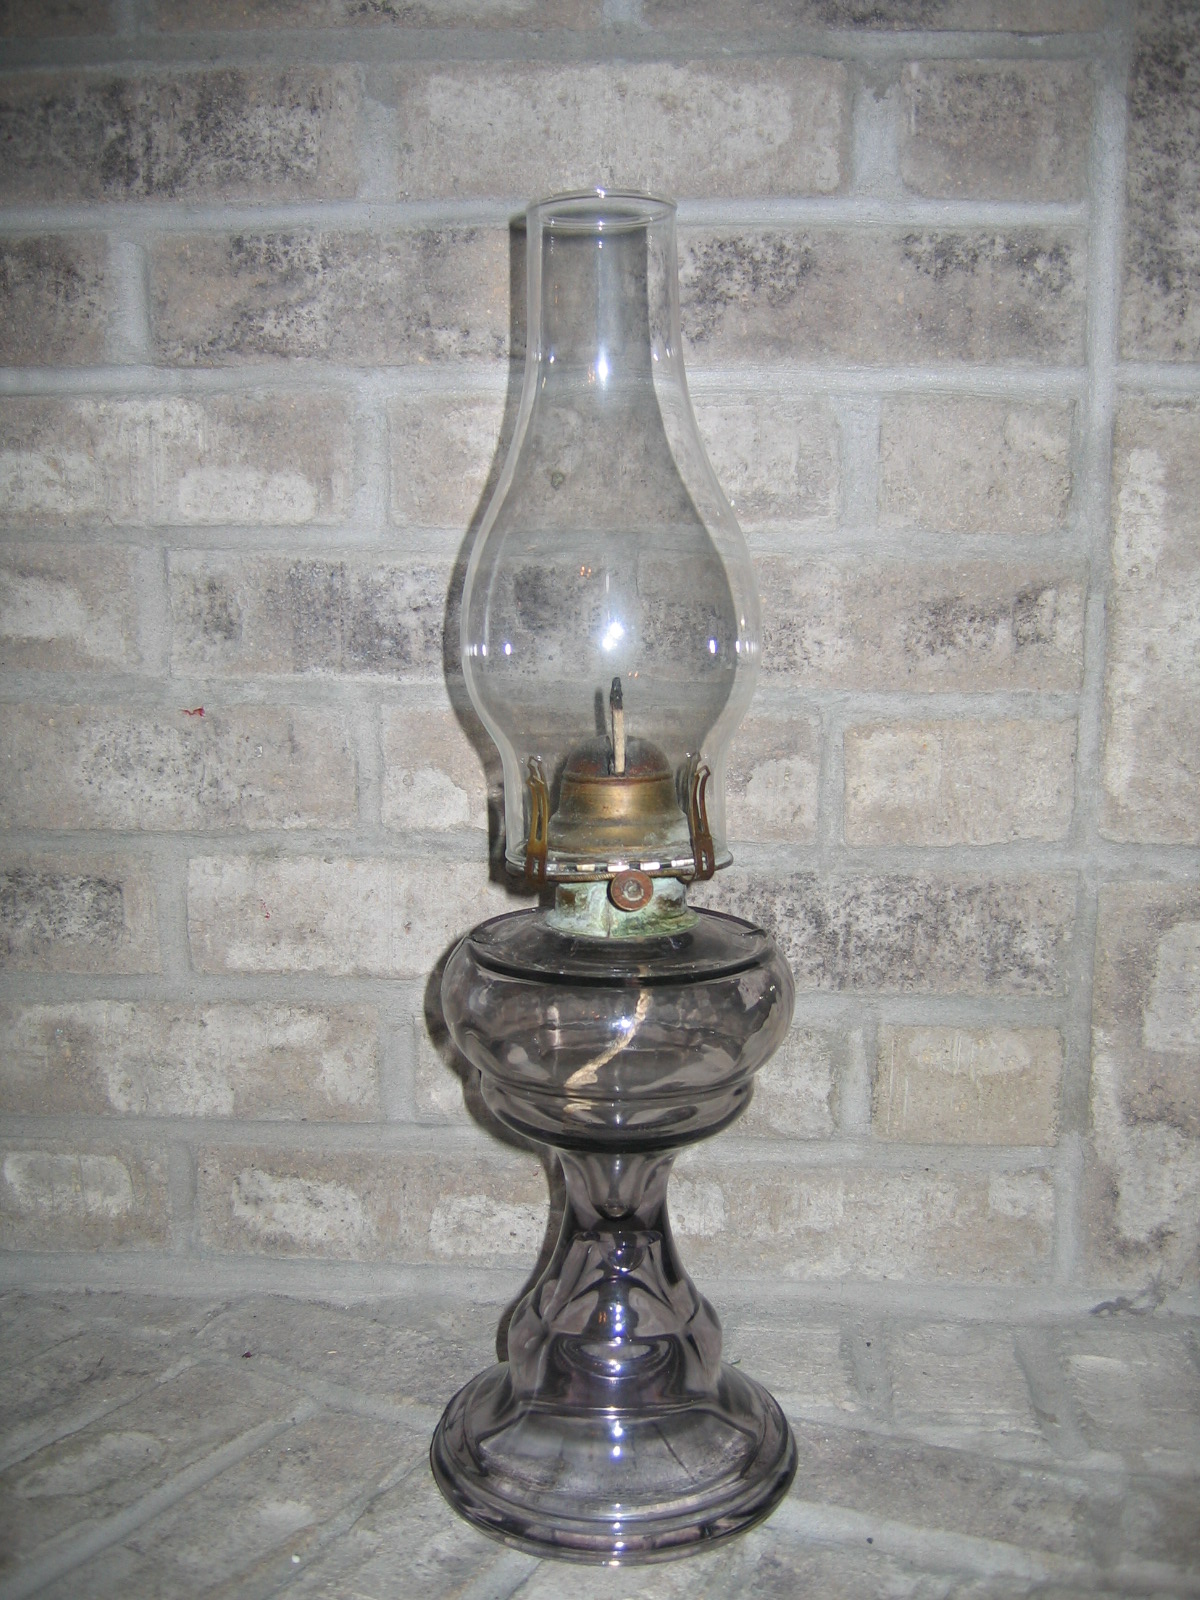 how to tell if an oil lamp is antique